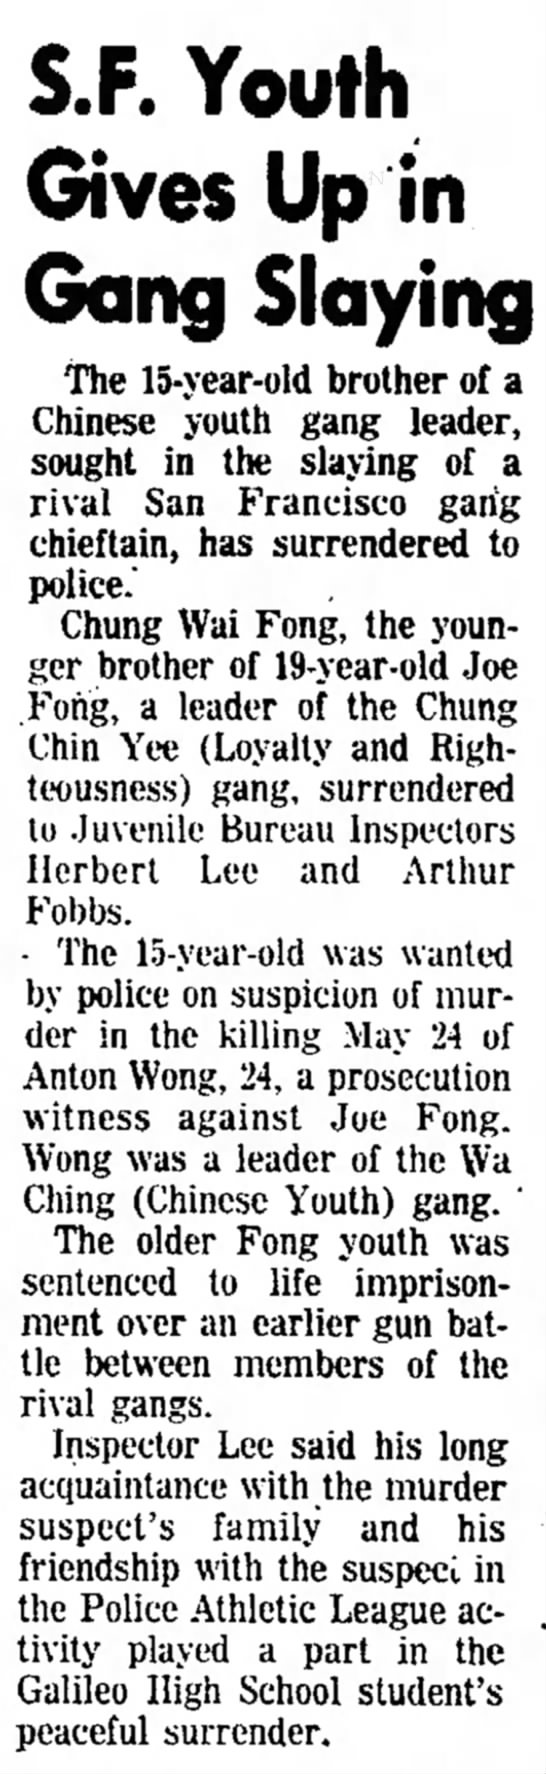 Chung Wai Fong surrenders in murder case - S - F - Youth he the the Then Lee, Rowan, Gives...